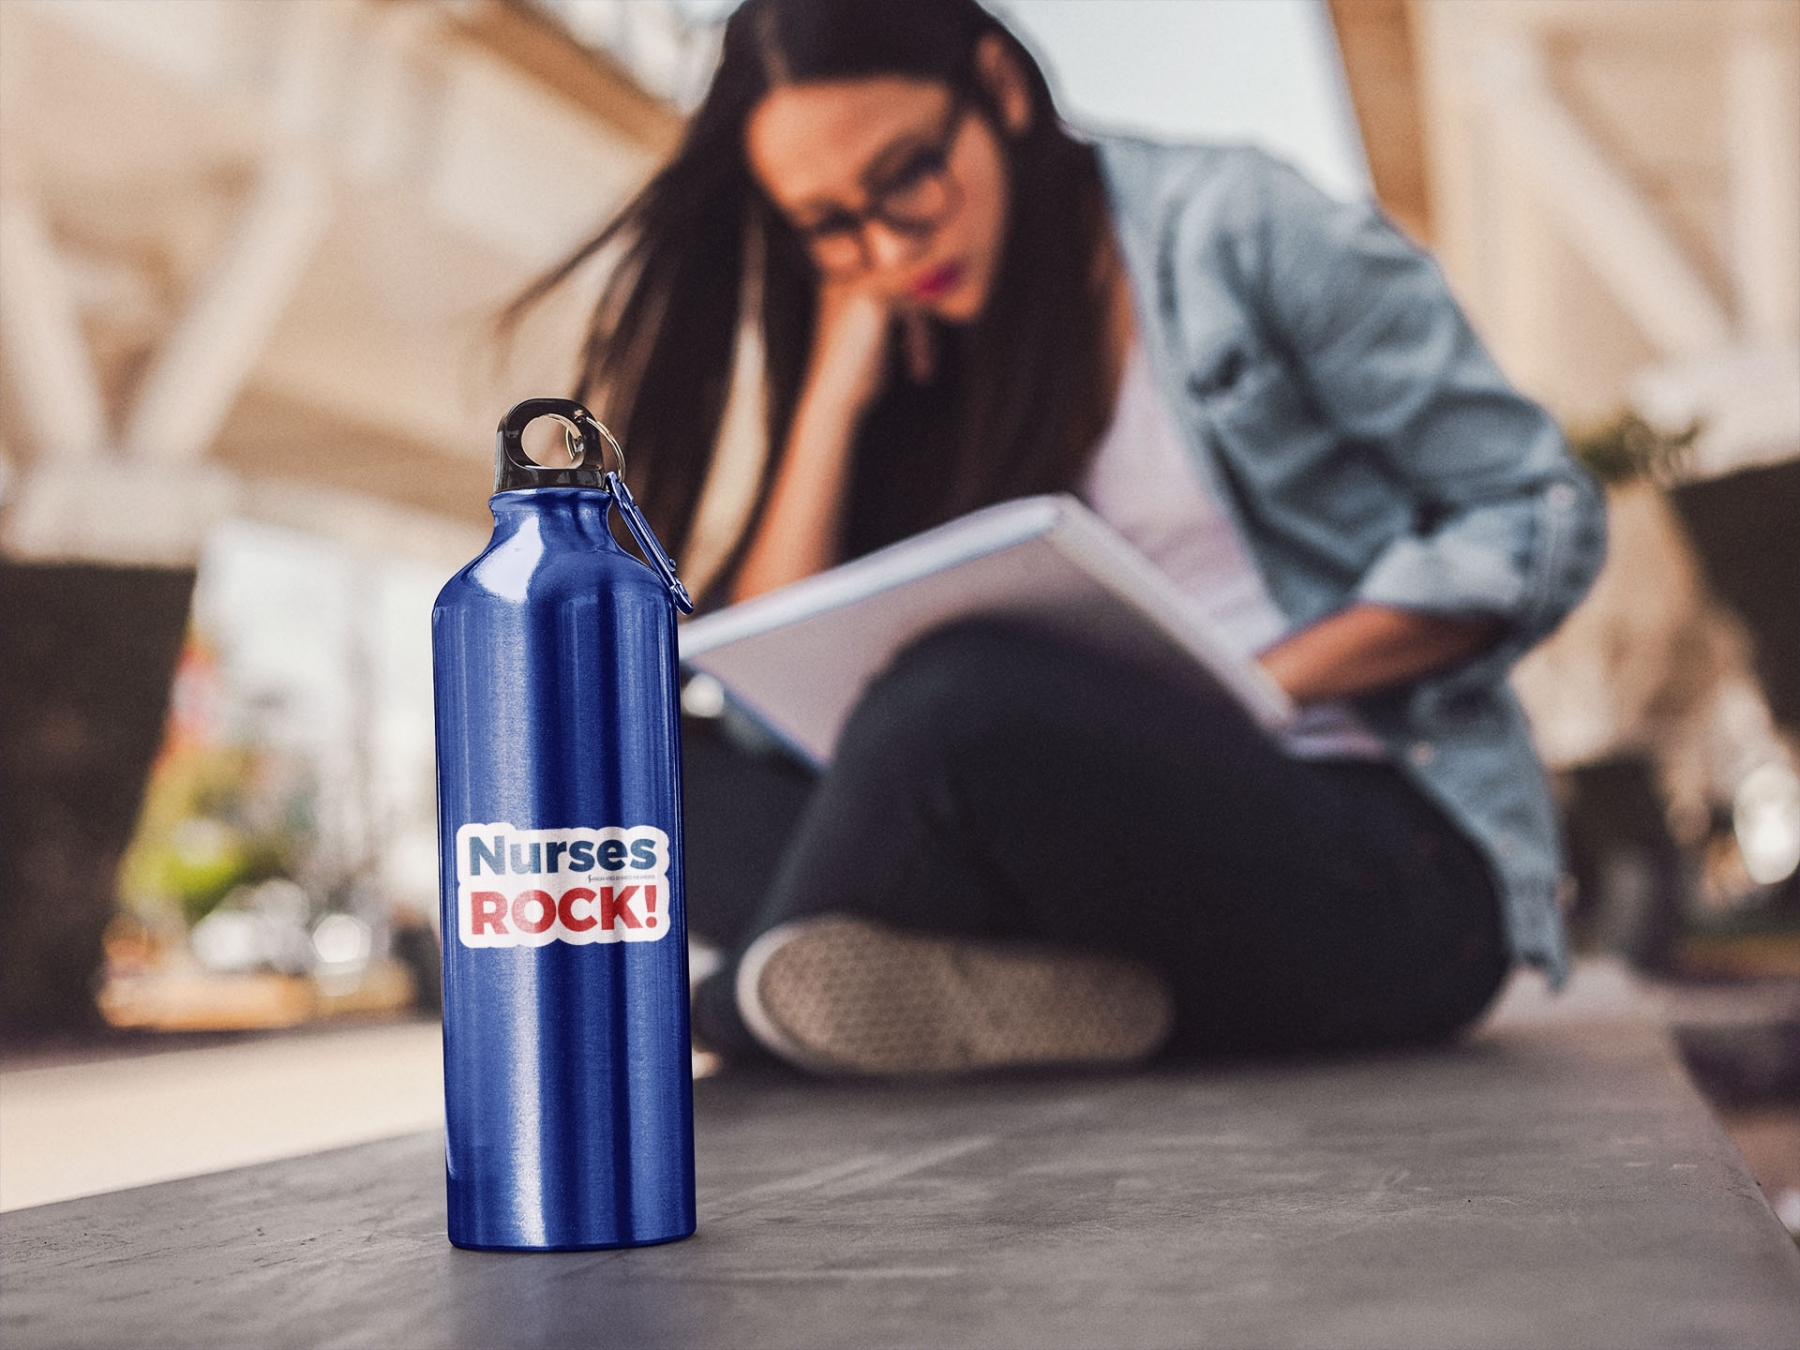 Nurses Rock red/blue text on waterbottle